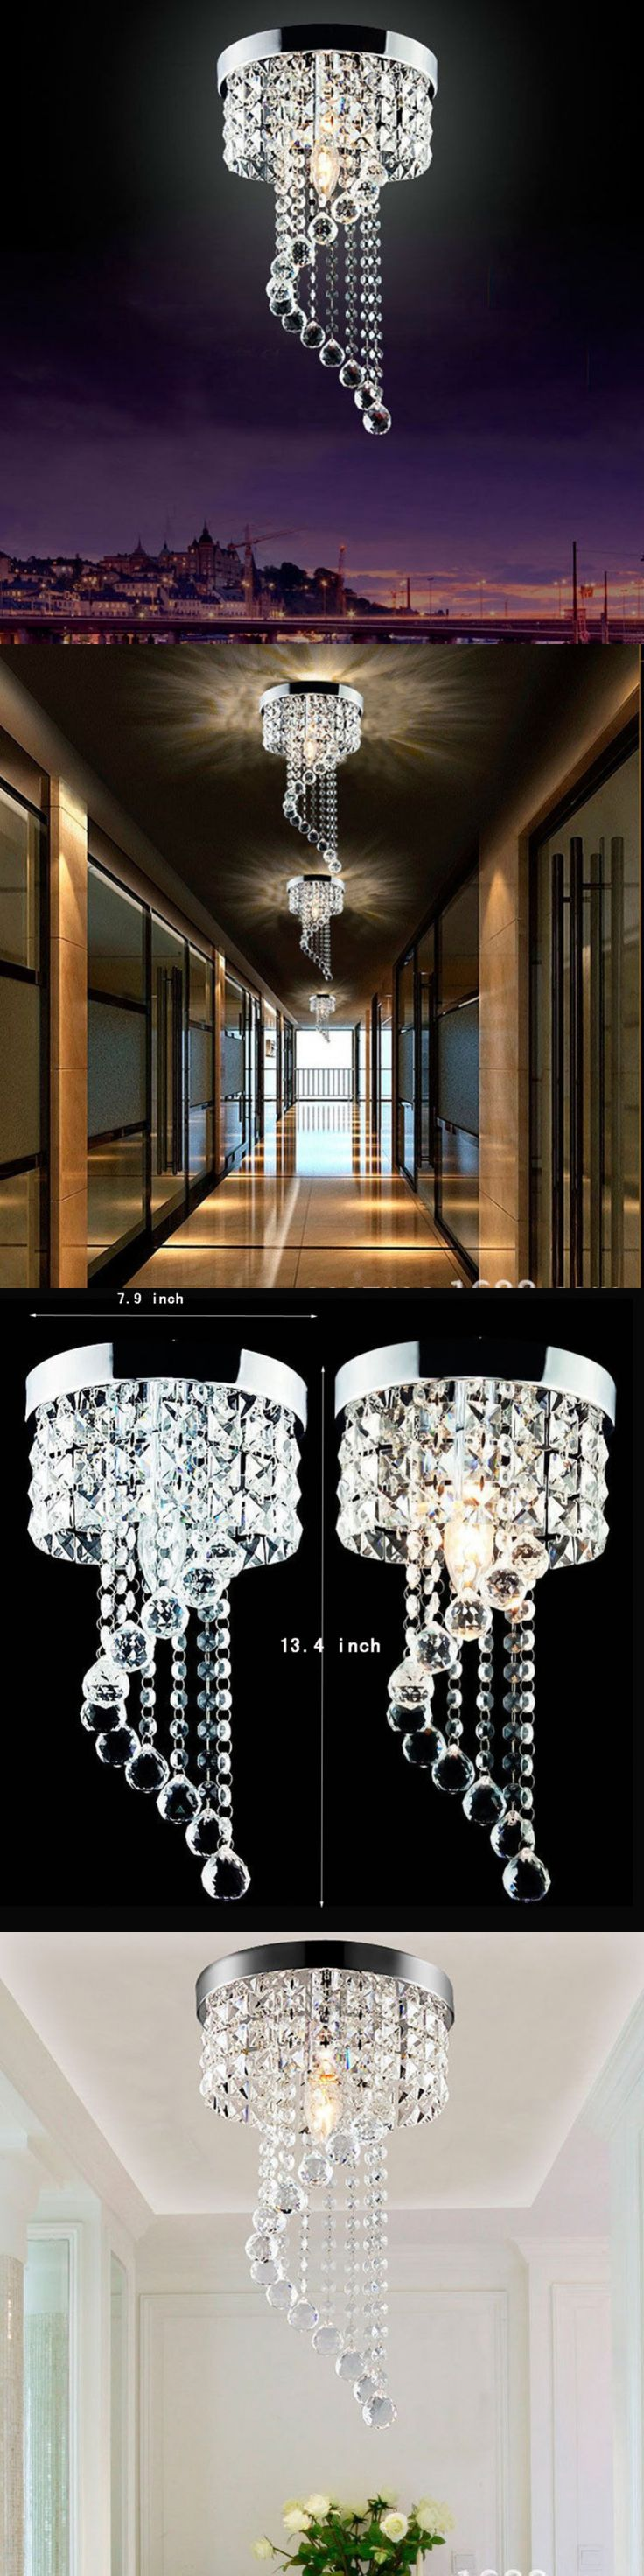 Lamps And Lighting: Modern Led Bulb Ceiling Light Pendant, Lighting Crystal Chandelier Decoration -> BUY IT NOW ONLY: $35.99 on eBay!